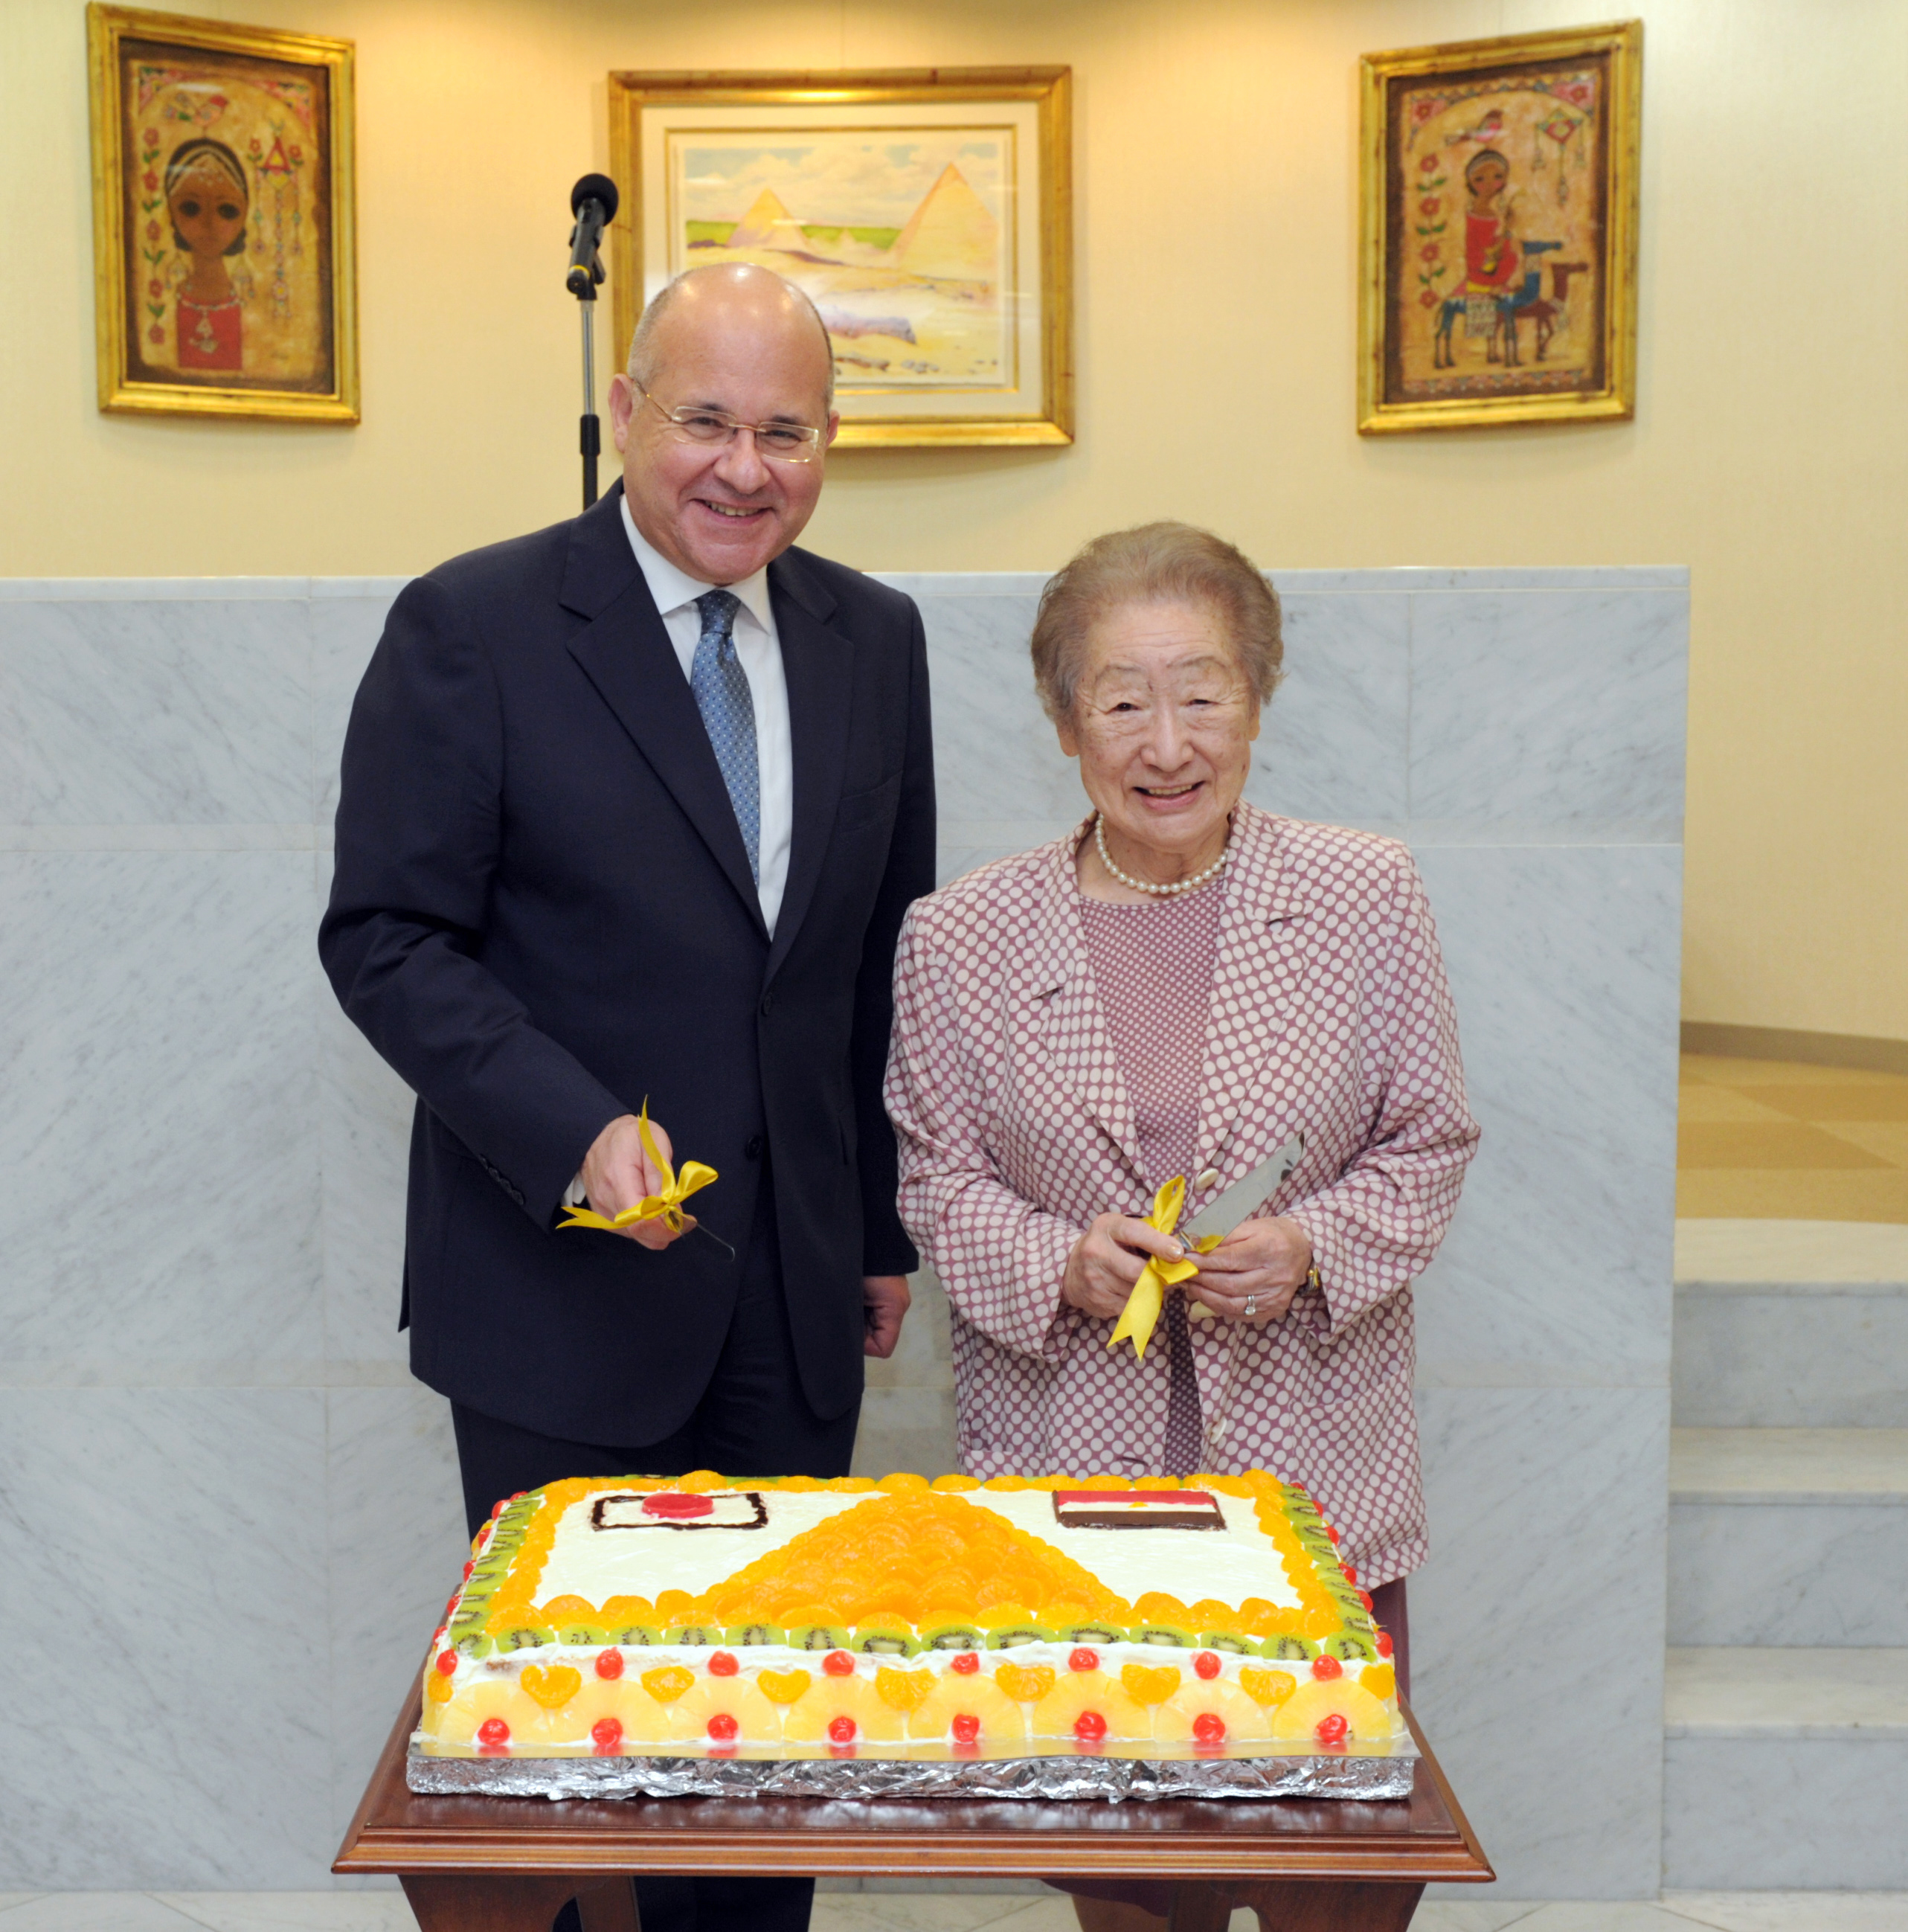 Egyptian Ambassador Ismail Khairt (left) prepares to cut a cake with Japan International Cooperation Agency (JICA) Special Advisor to the President Sadako Ogata (former president of JICA and UNHCR) at a reception to celebrate Egypt's National  Day at the ambassador's residence in Tokyo on July 1. | YOSHIAKI MIURA